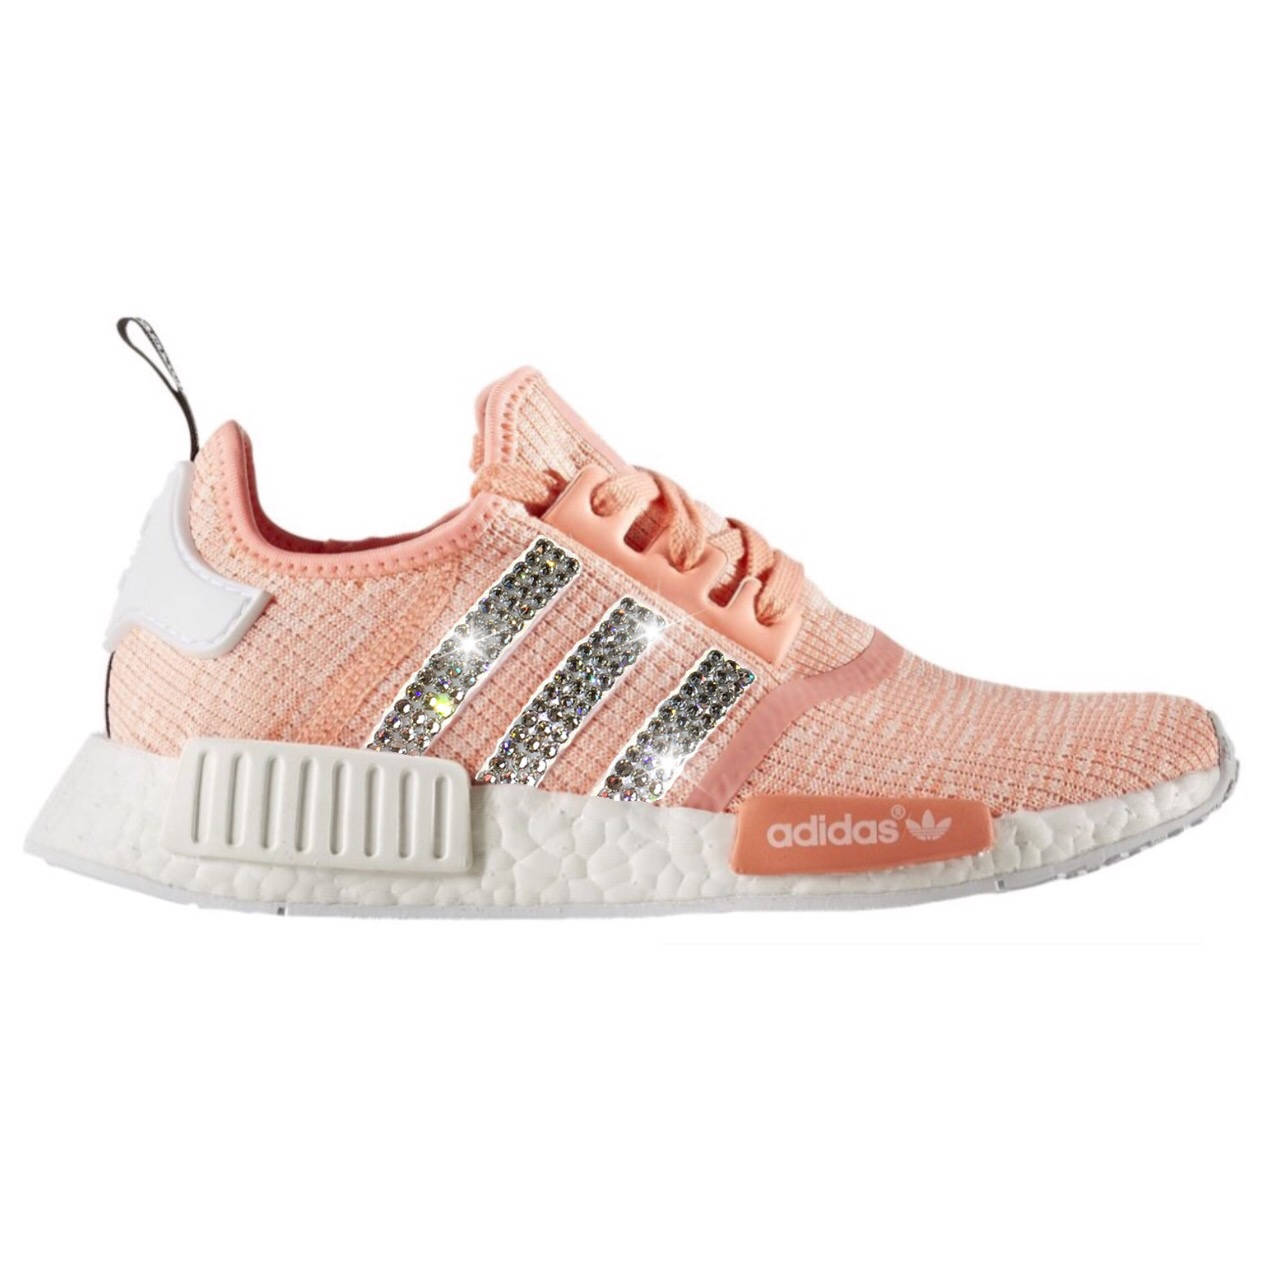 Bling Adidas NMD with Swarovski Crystals   Women s Originals NMD R1 Runners  Casual Shoes   Sun Glow ... b8b01a0ae1dc